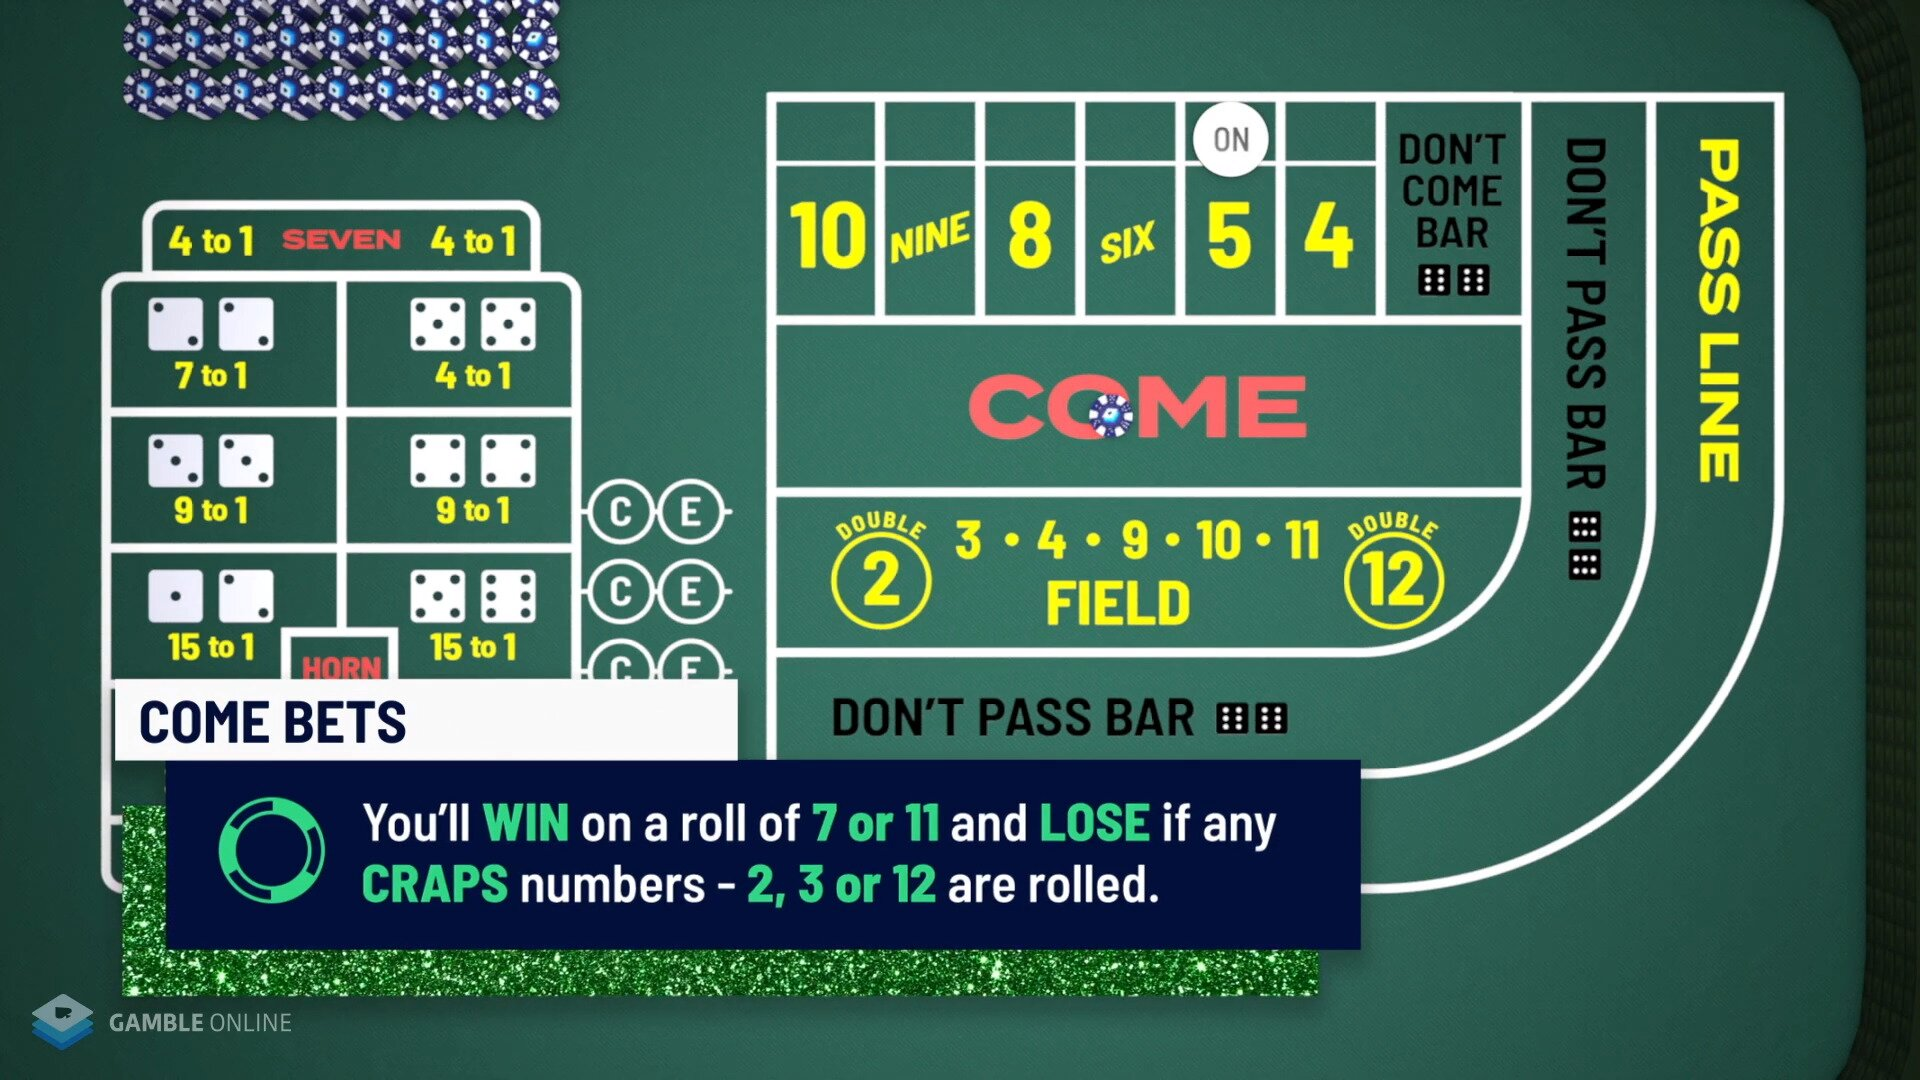 How to Play Craps Online _ Learn to Play Craps in Under 10 Minutes 2020 4-24 screenshot